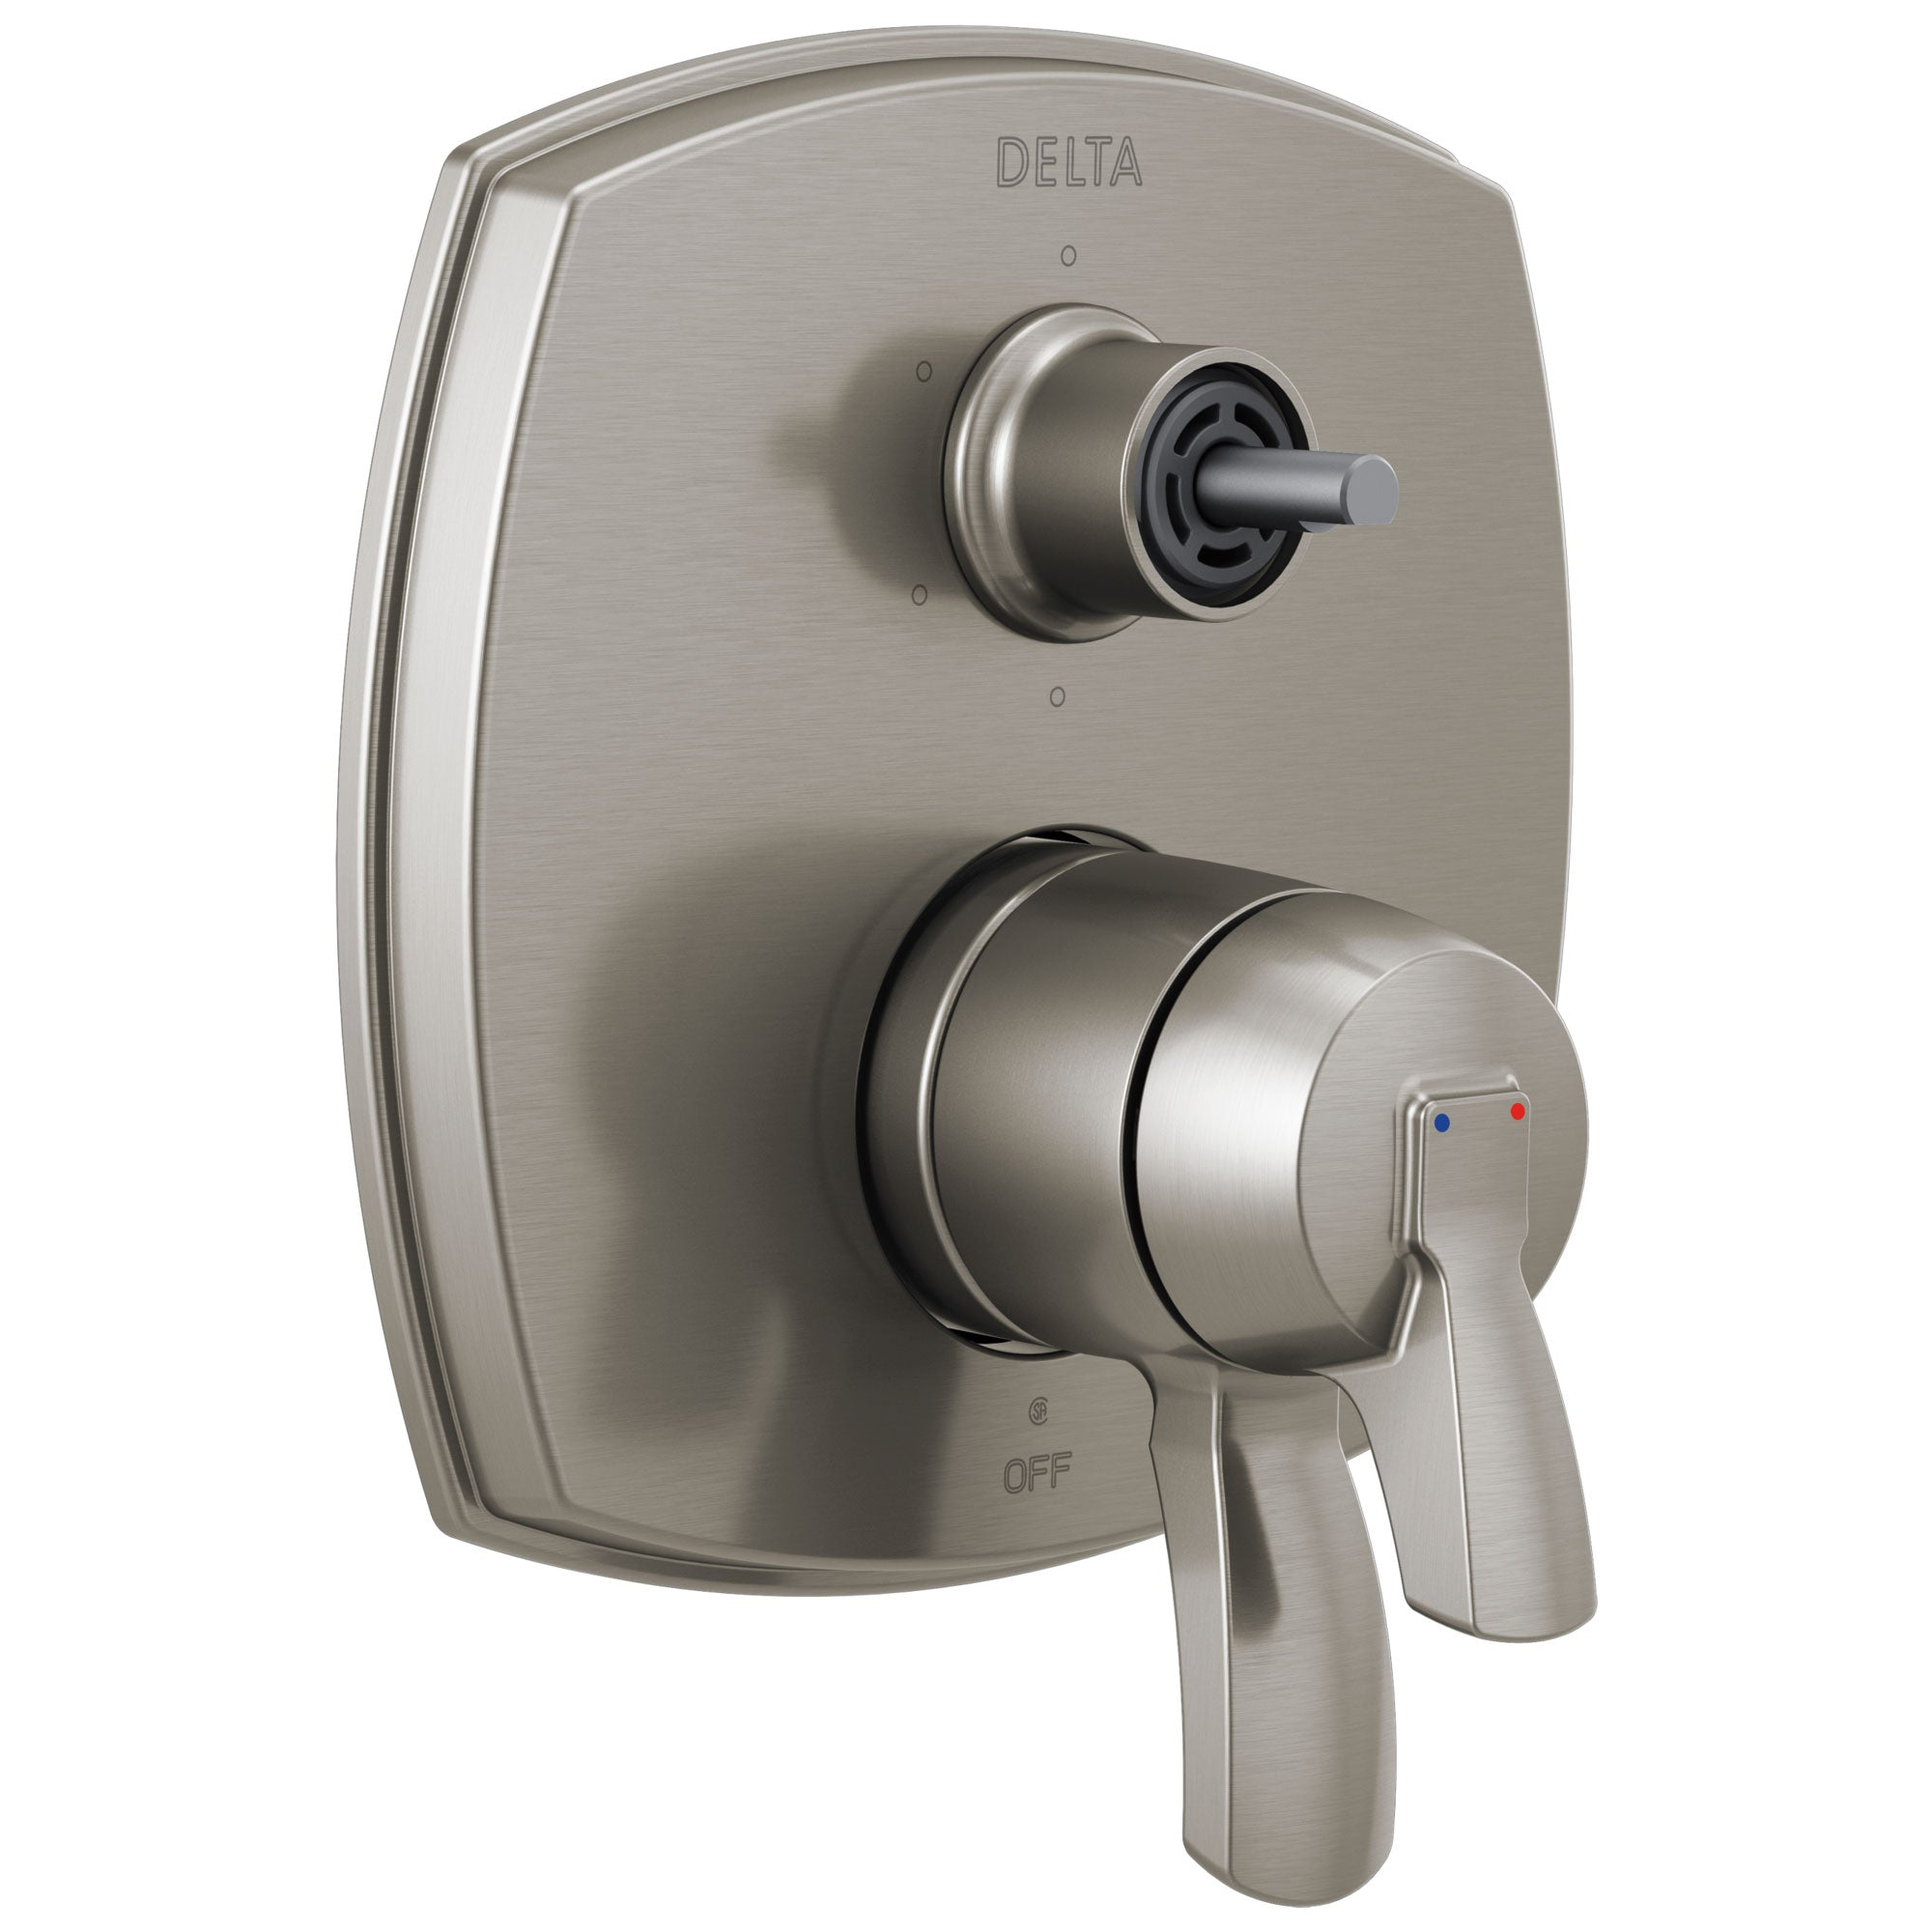 Delta Stryke Stainless Steel Finish 17 Series Integrated Diverter Shower Control Trim Kit with Six Function Diverter Less Diverter Handle (Requires Valve) DT27976SSLHP